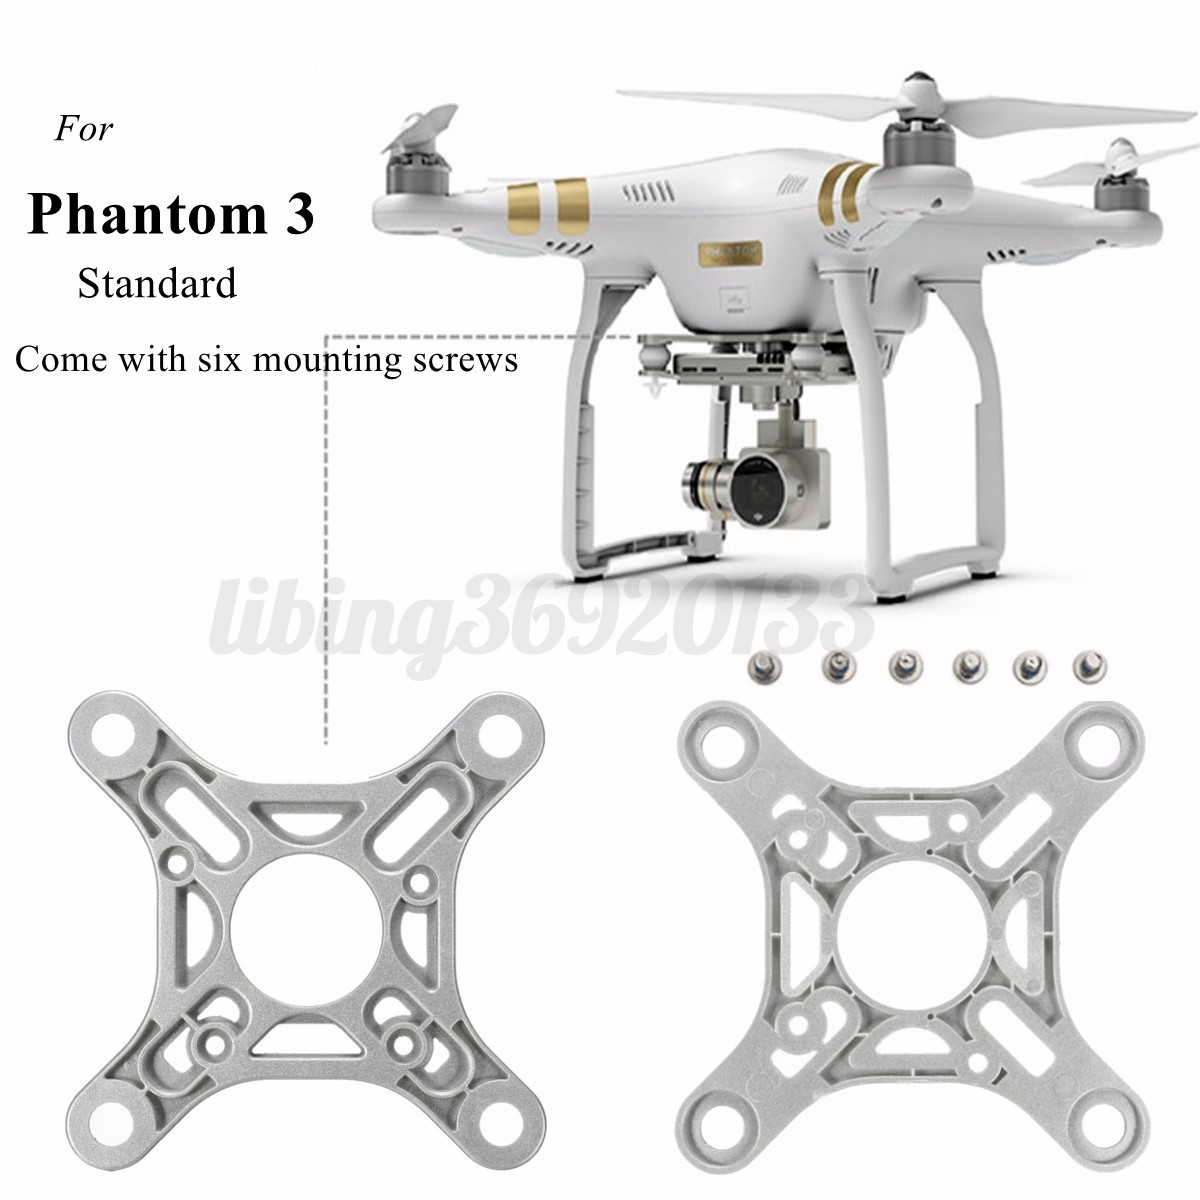 camera vibration absorbing board for dji phantom 3. Black Bedroom Furniture Sets. Home Design Ideas